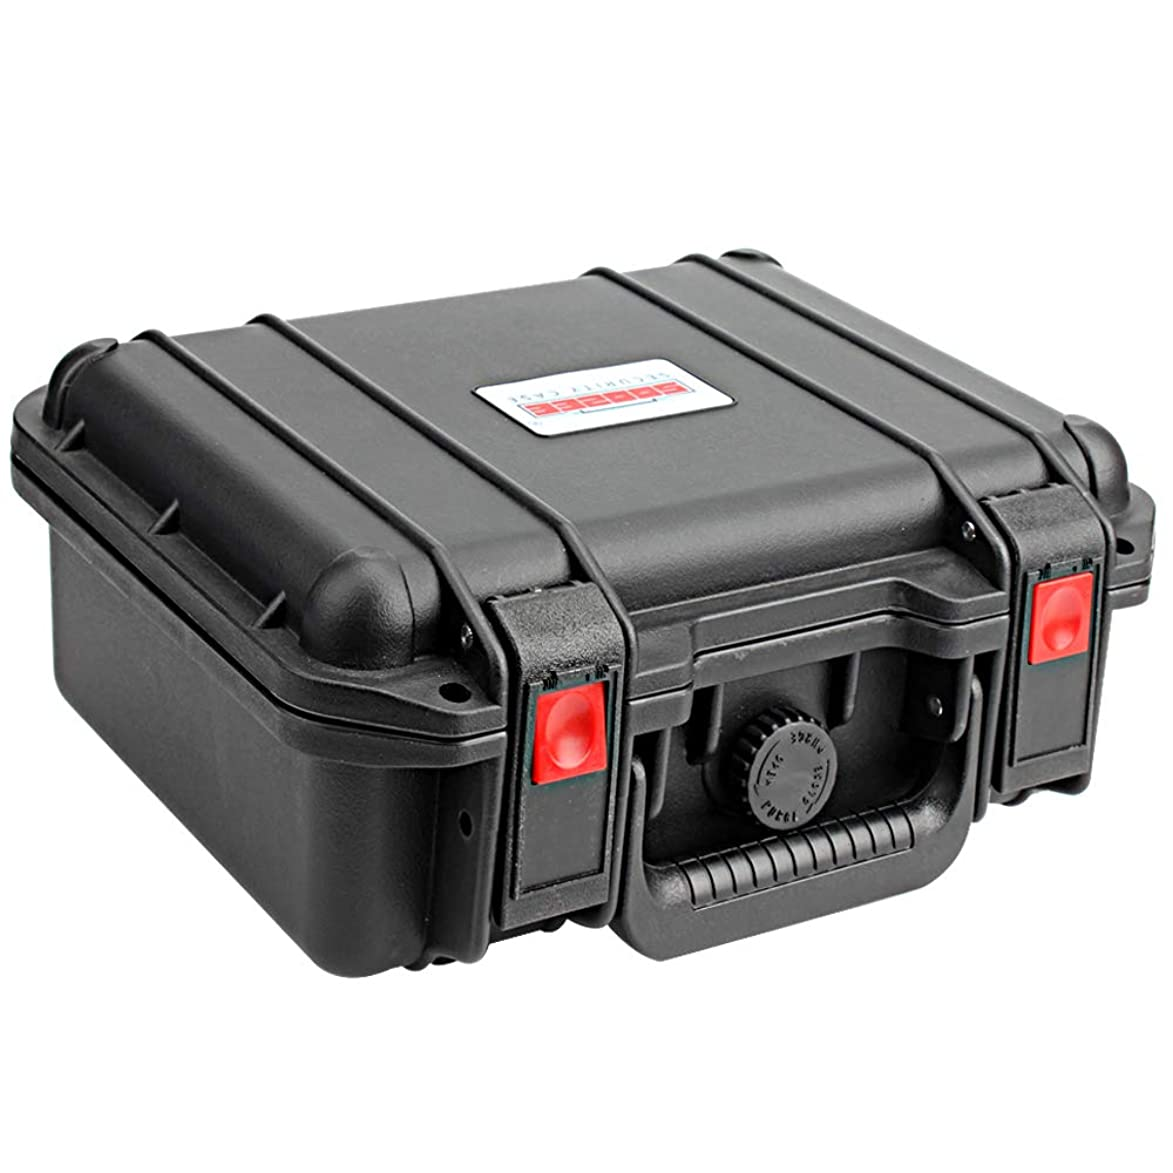 Soozee 1100 Case with Foam (Black)- Hard Pistol Case for Compact and subcompact Guns, and Other Device Like Gopro, Label Makers, Mirrorless Camera, DJI Spark, Cozmo